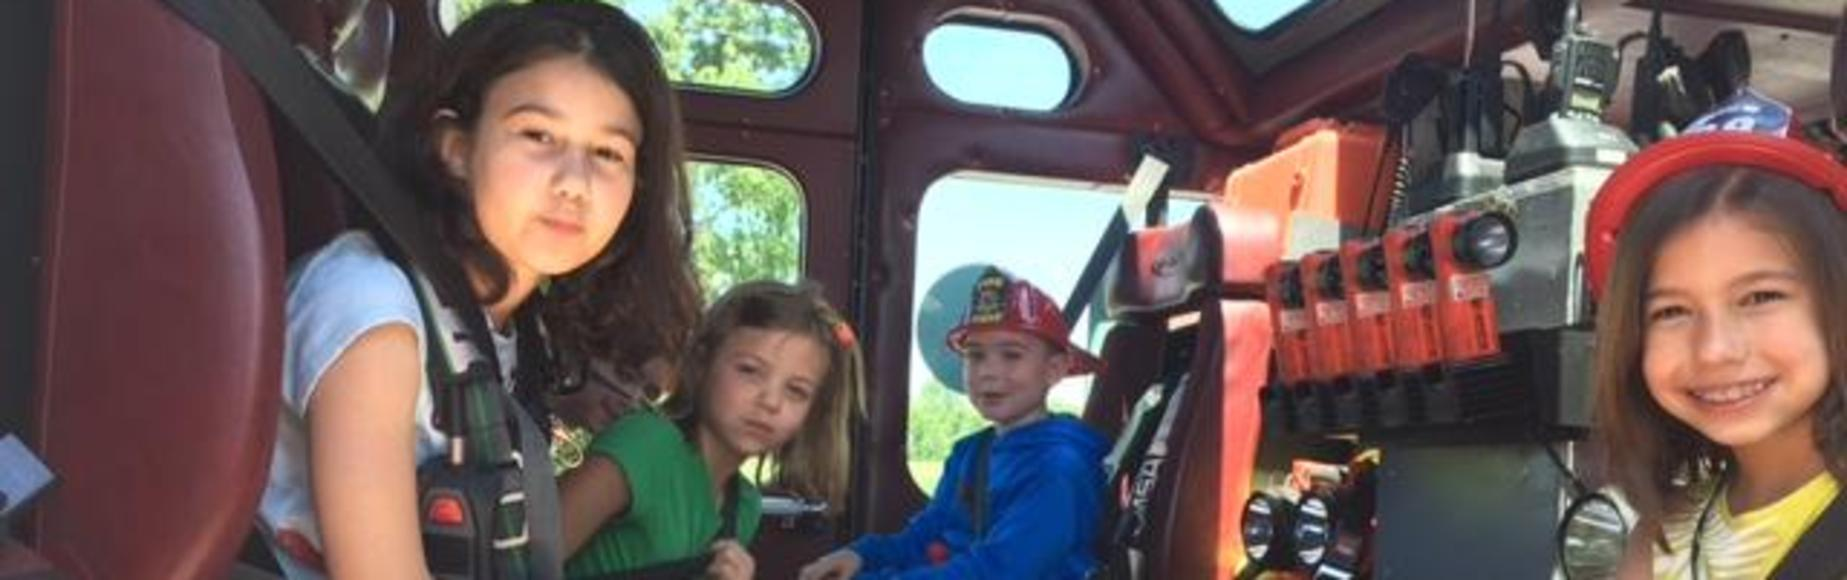 Students in firetruck picture